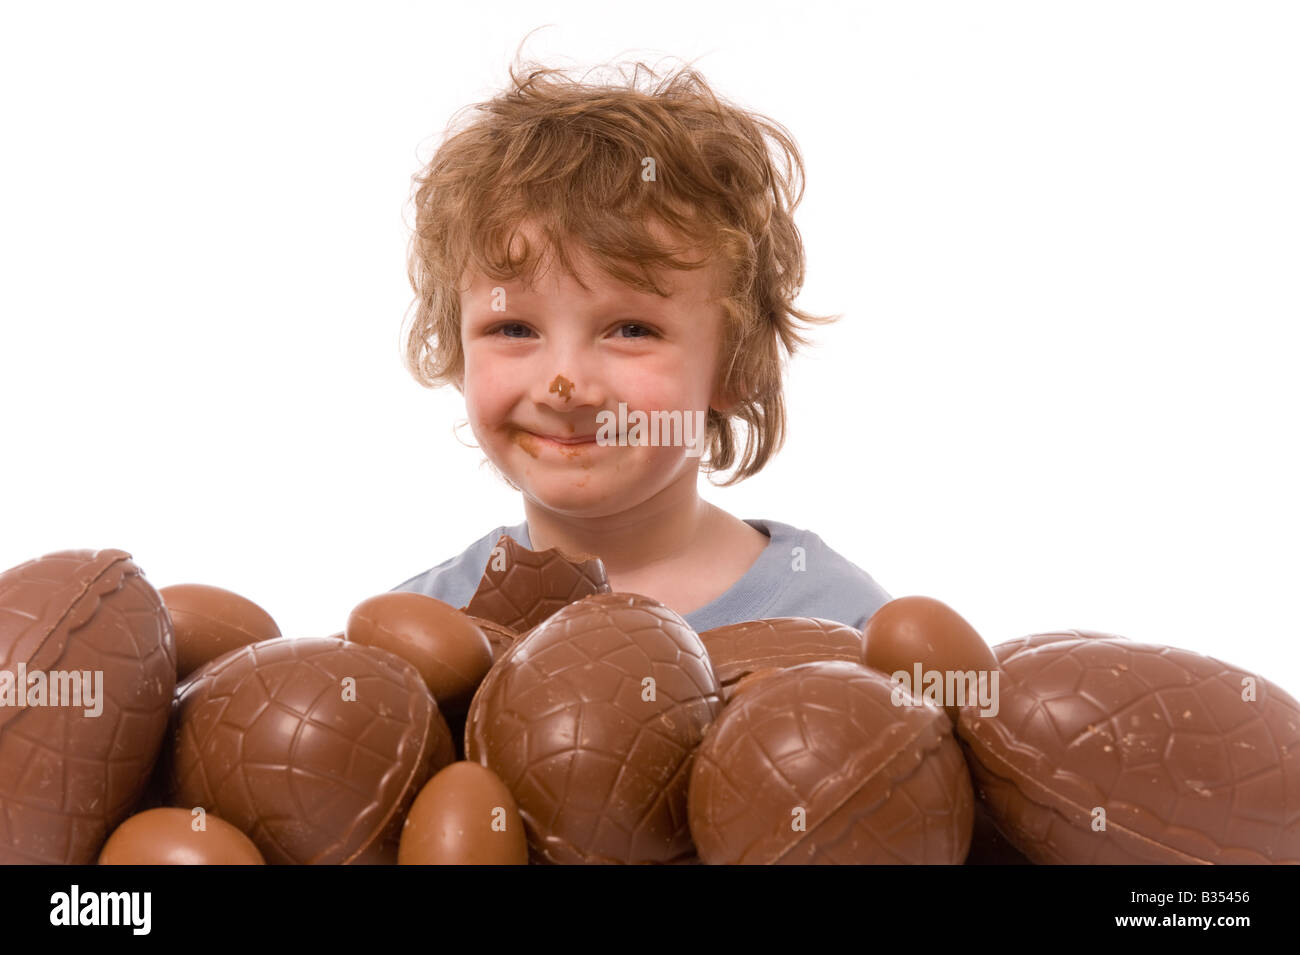 Young Boy With Large Pile Of Easter Eggs